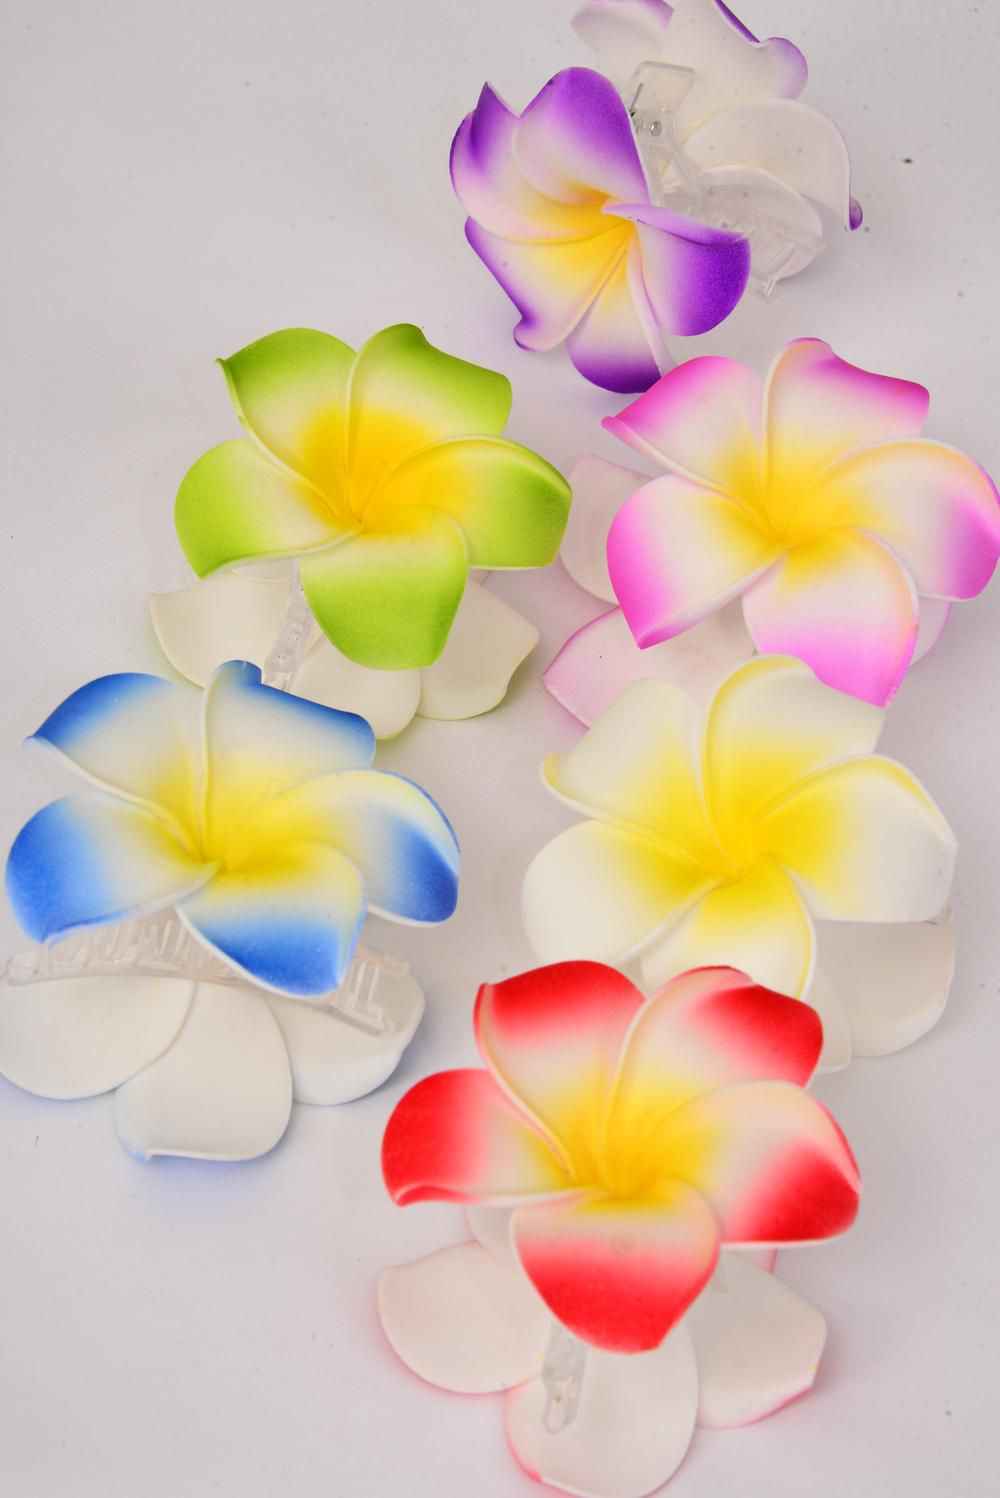 "Jaw Clip Aloha Flowers Pastel/DZ **Pastel** Flower Size-3"",2 of each Color Asst,Hang Tag & UPC Code,Clear Box"